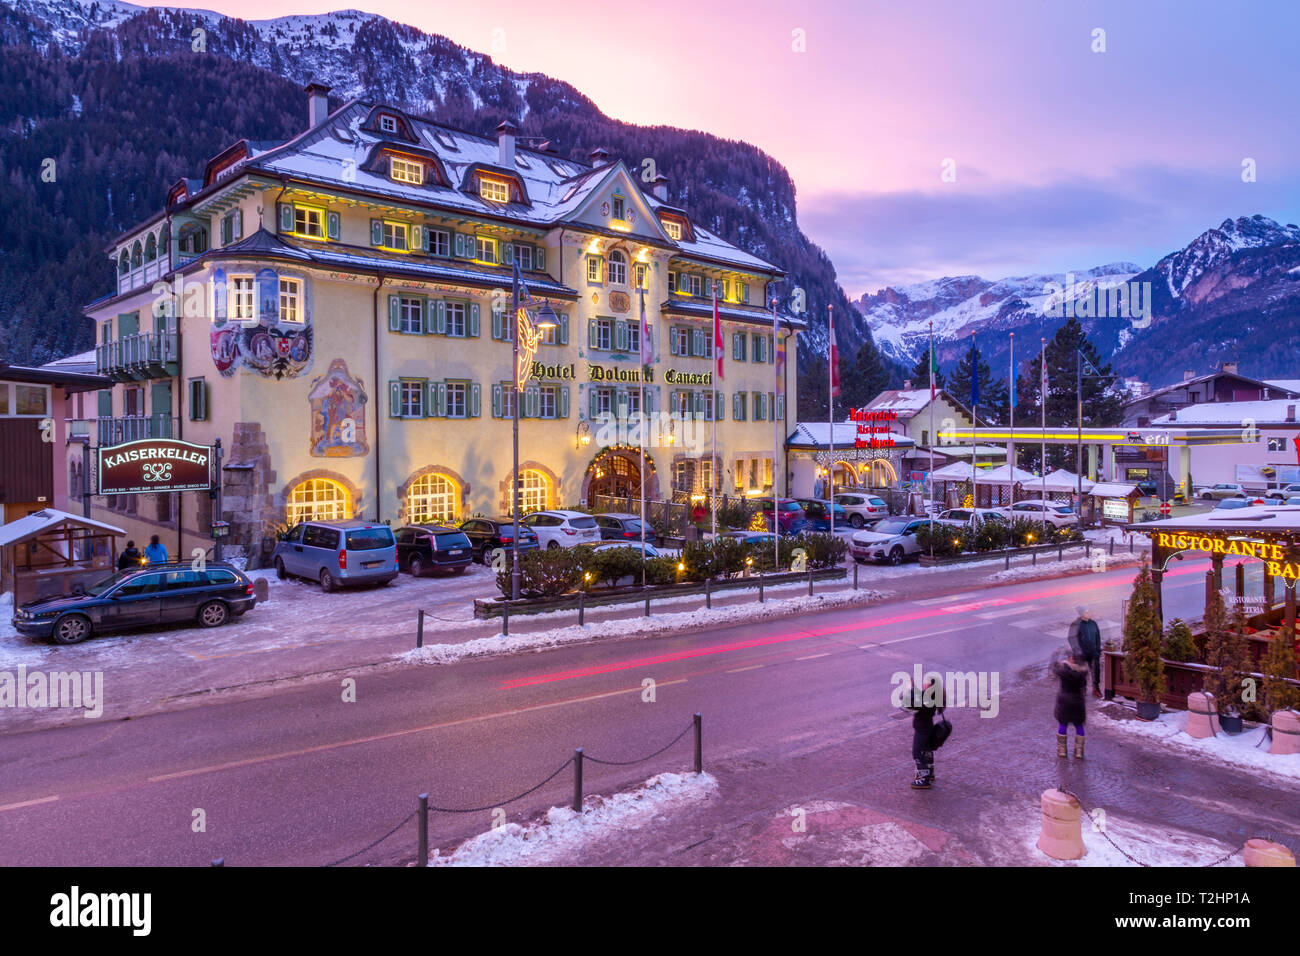 View of Hotel Dolomiti Canazei at dusk in winter, Canazei, Val di Fassa, Trentino, Italy, Europe - Stock Image